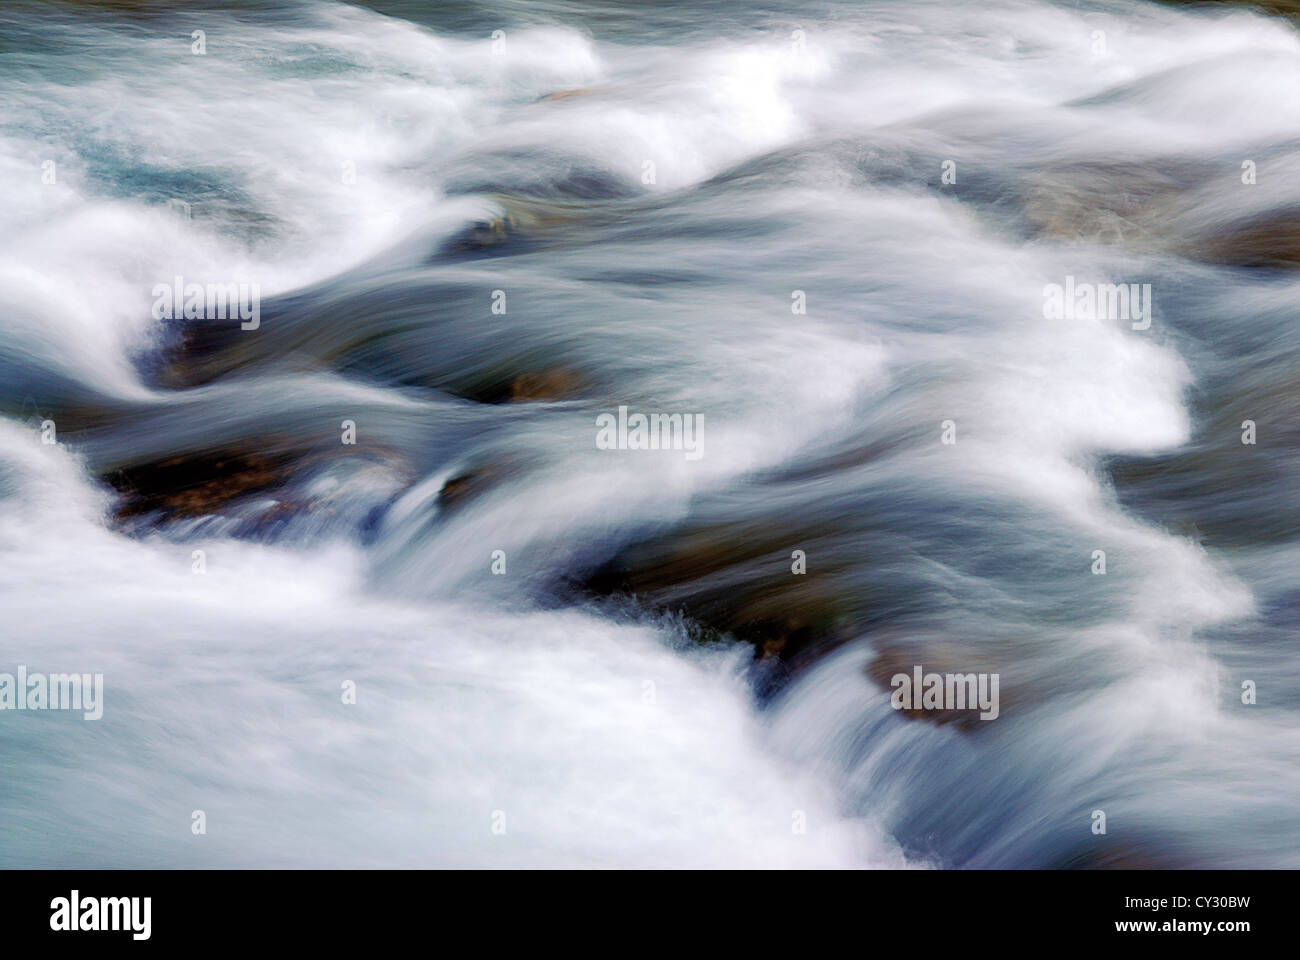 Spain, Cantabria: Running water of mountain river Cares in Mier - Stock Image